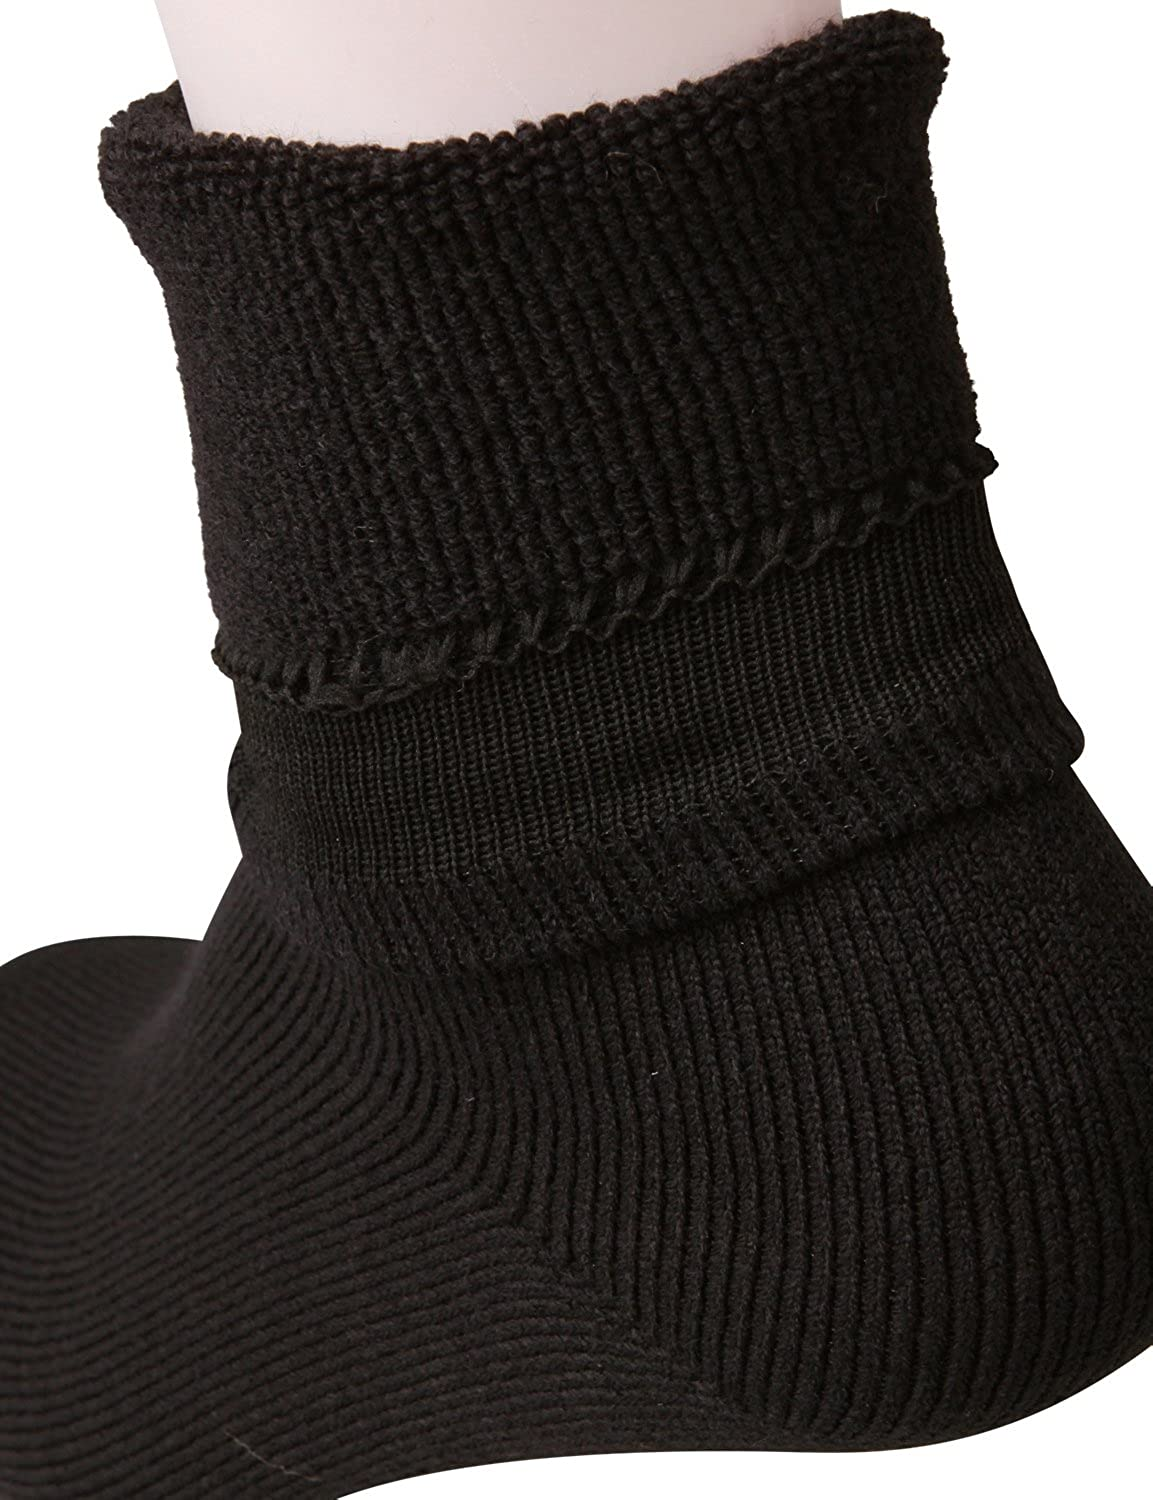 HASLRA Excellent Cushioning Thermal Thick Boot Sock 2-3 Pairs